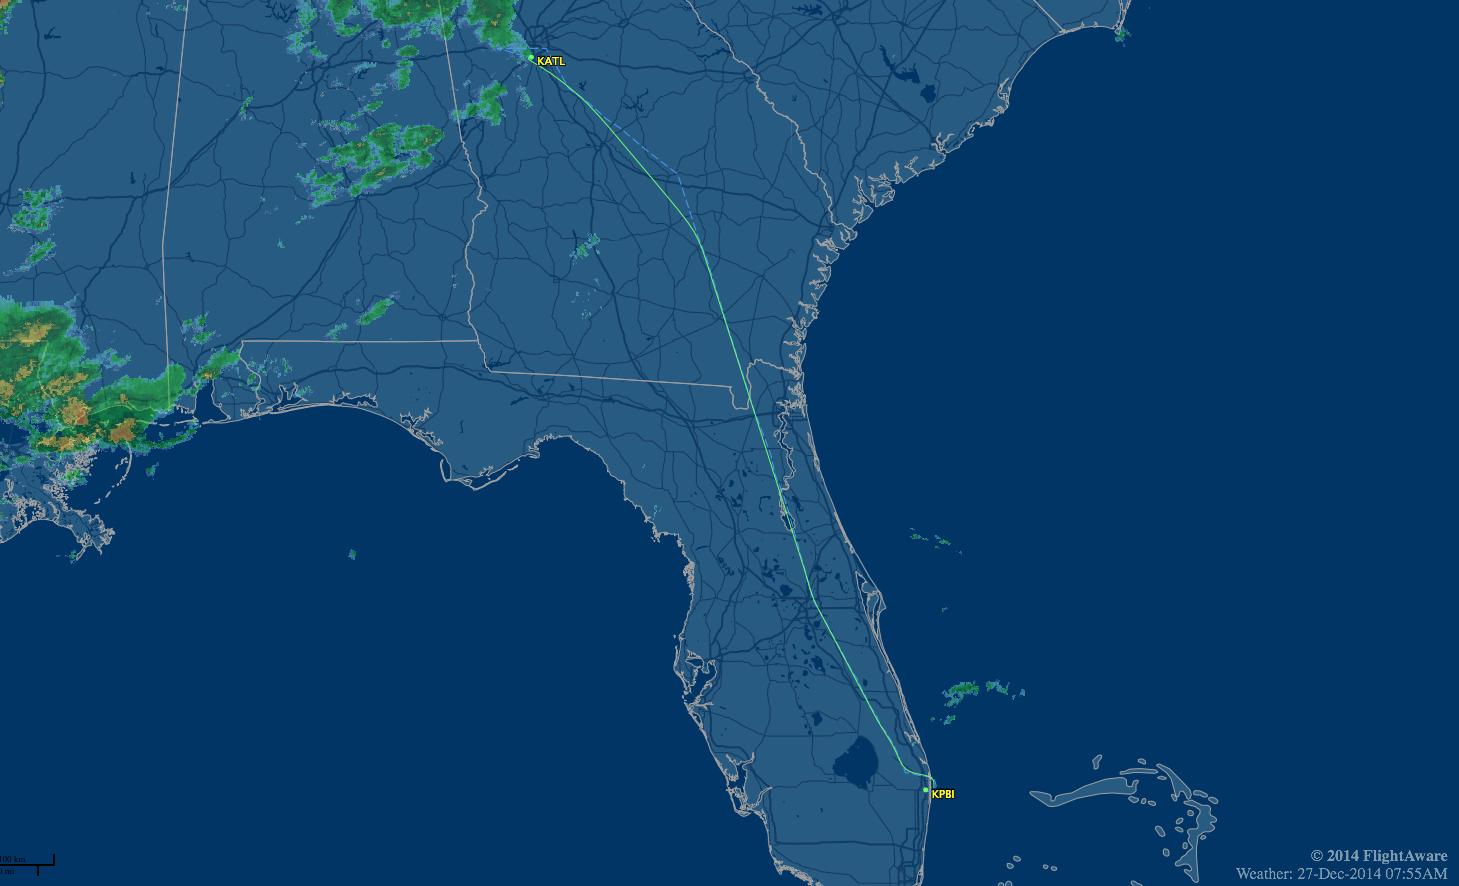 route map pbi-atl showing weather